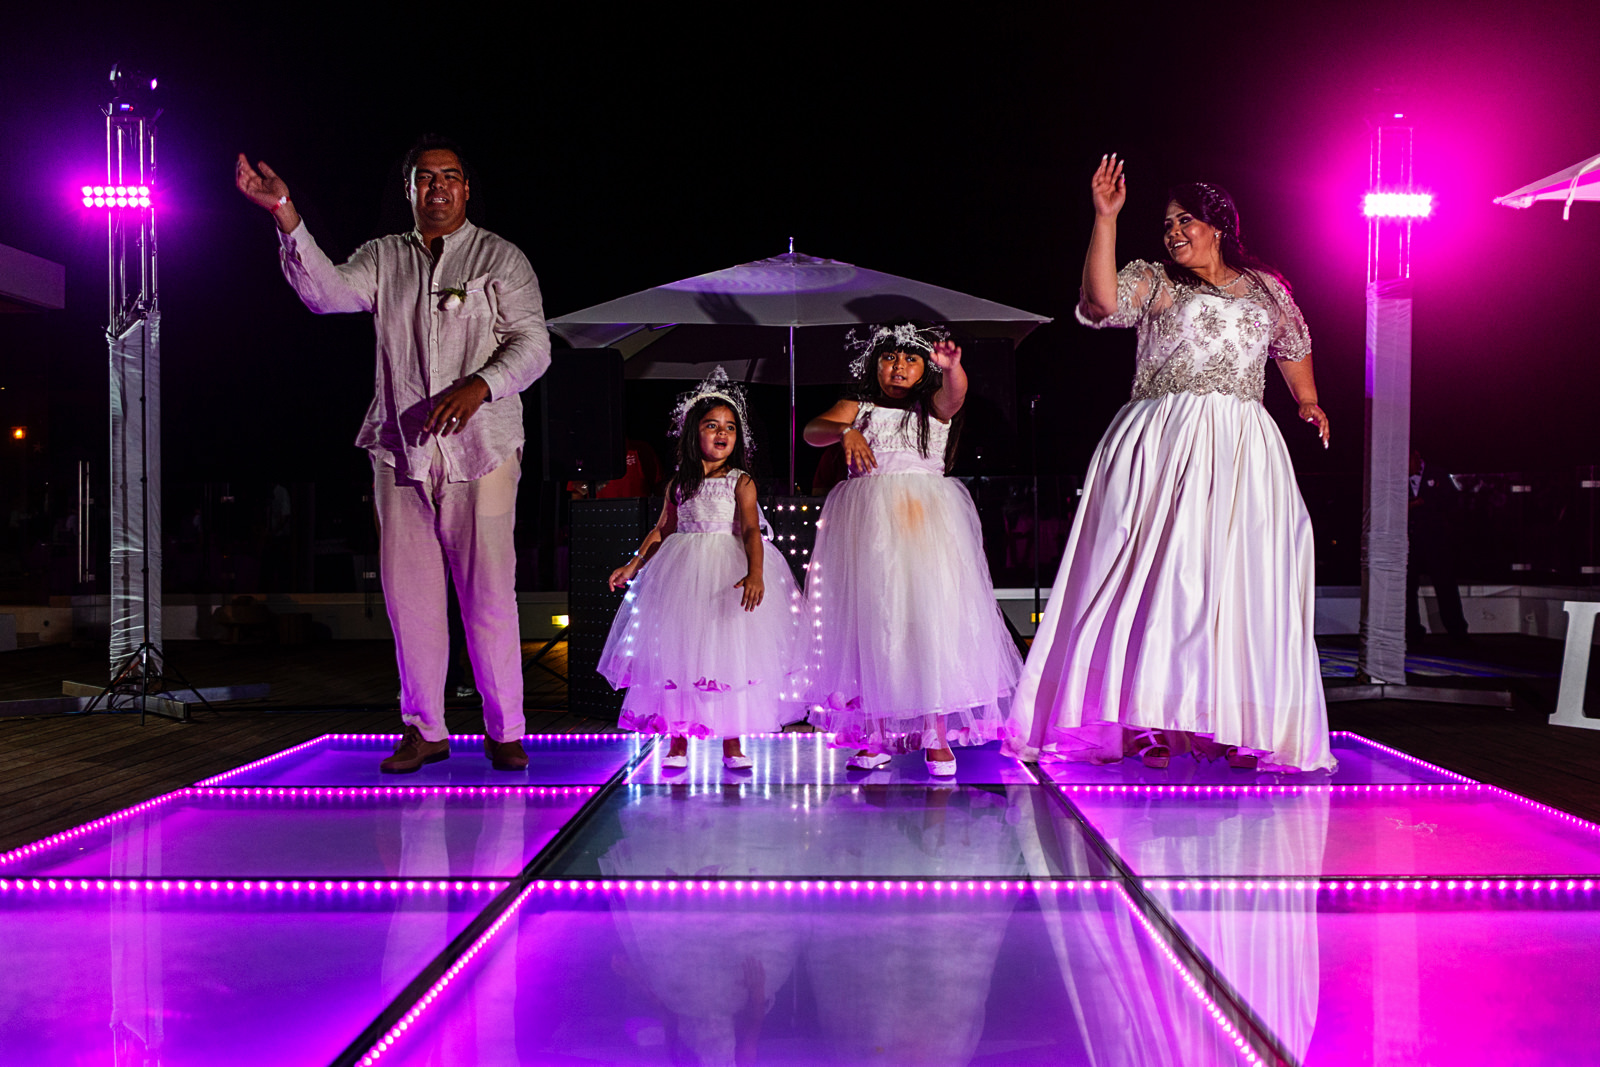 Bride, groom and daughters (flower girls) doing a dance for the guests as part of the first dance